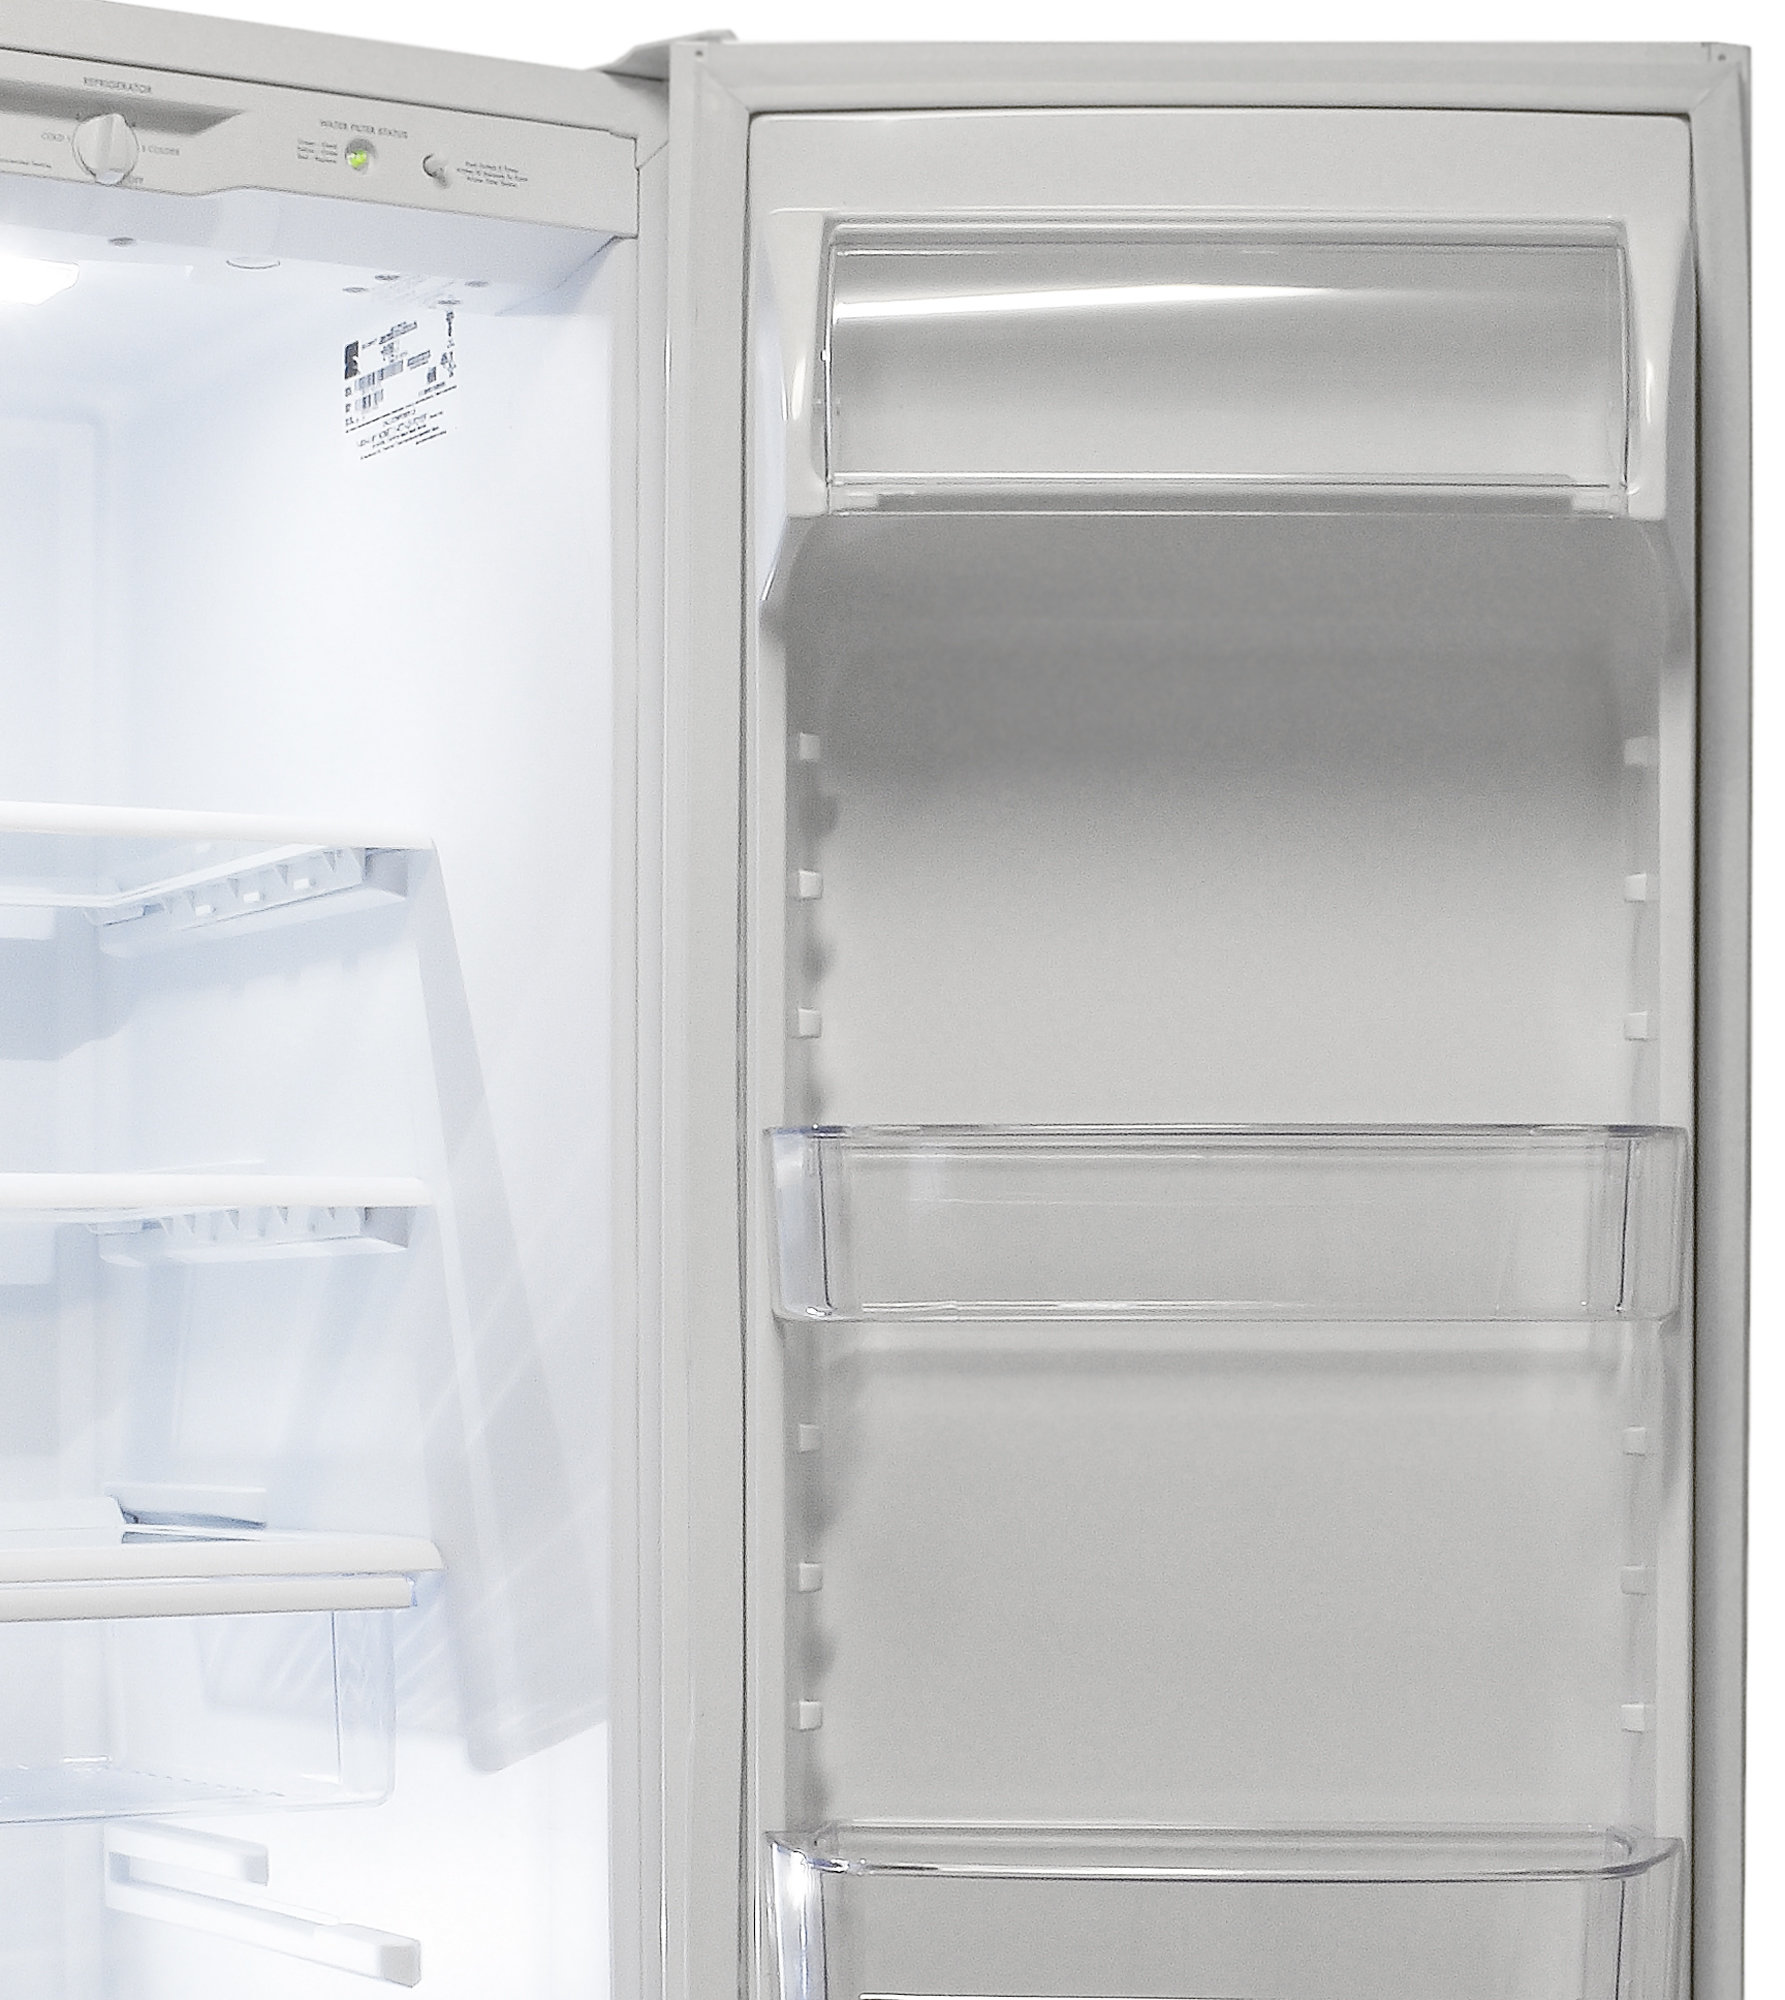 While the dairy bin is fixed, almost all of the Kenmore 51122's other fridge door shelves are adjustable.